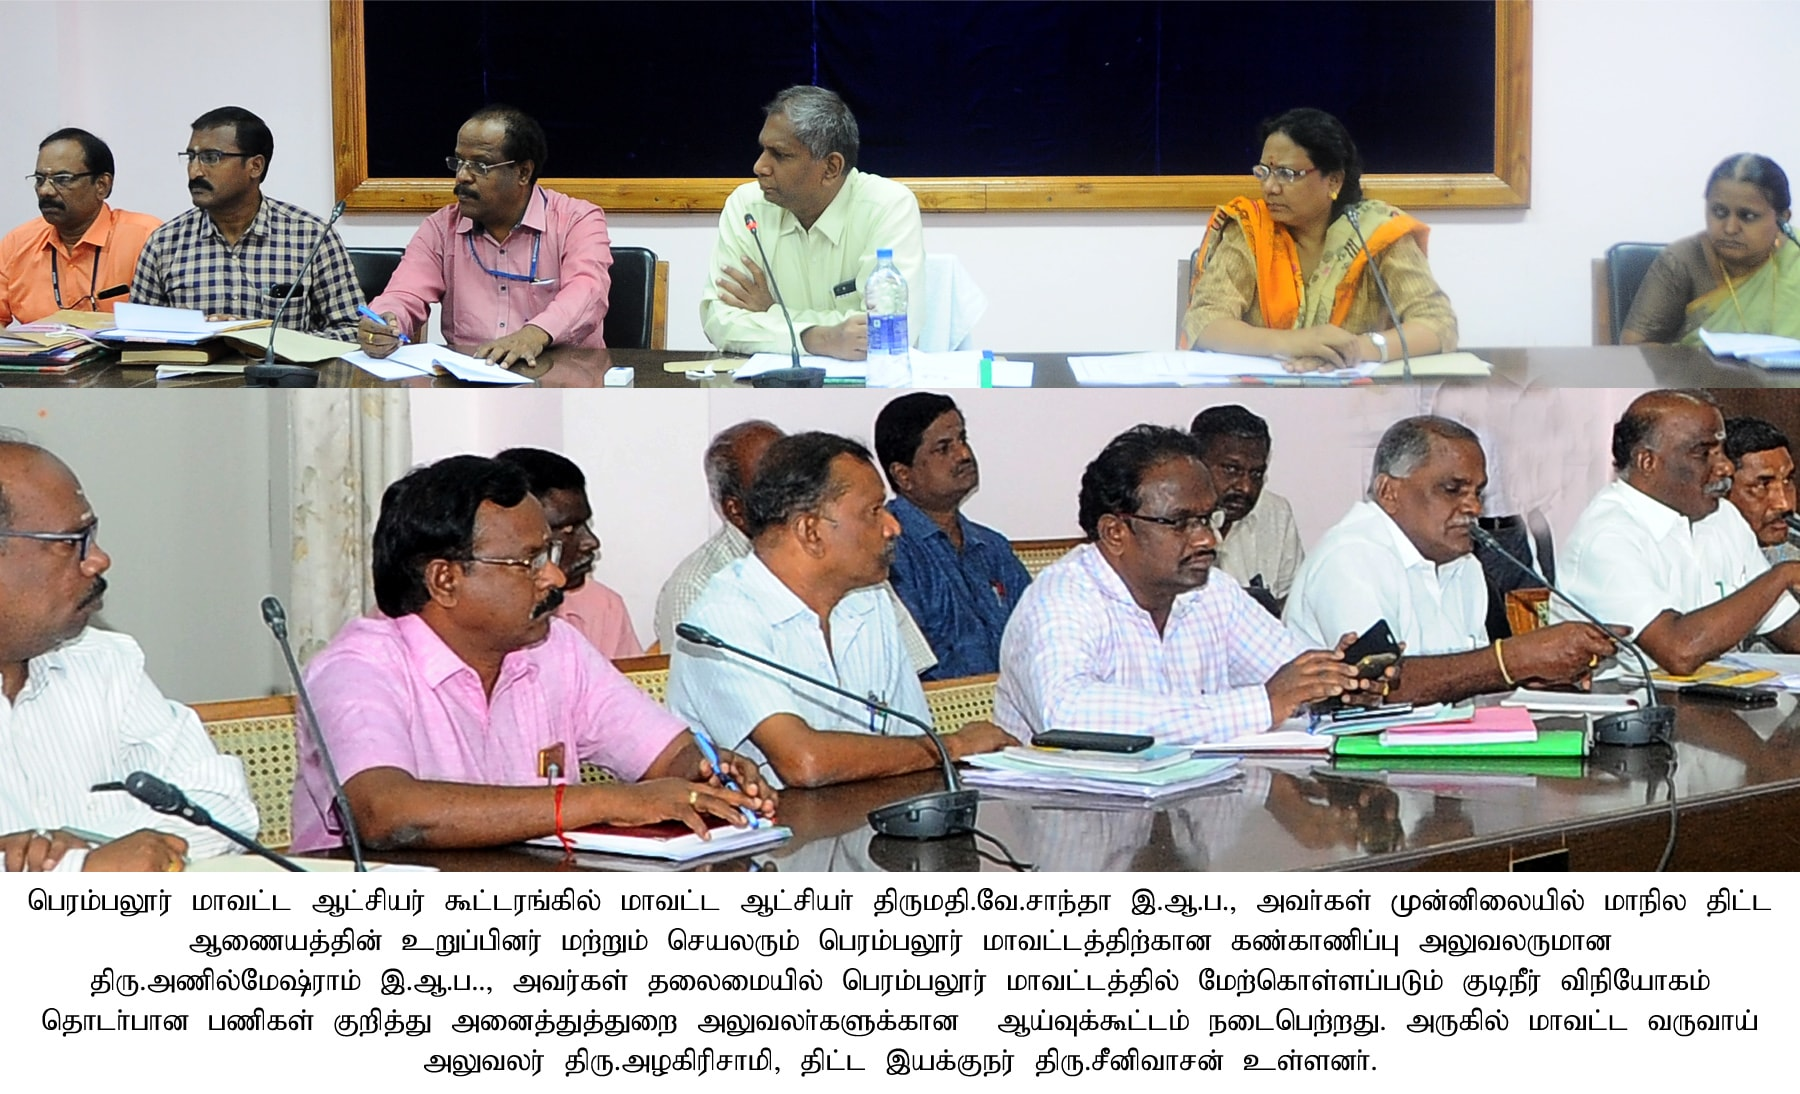 Review meeting conducted on Project implemented.